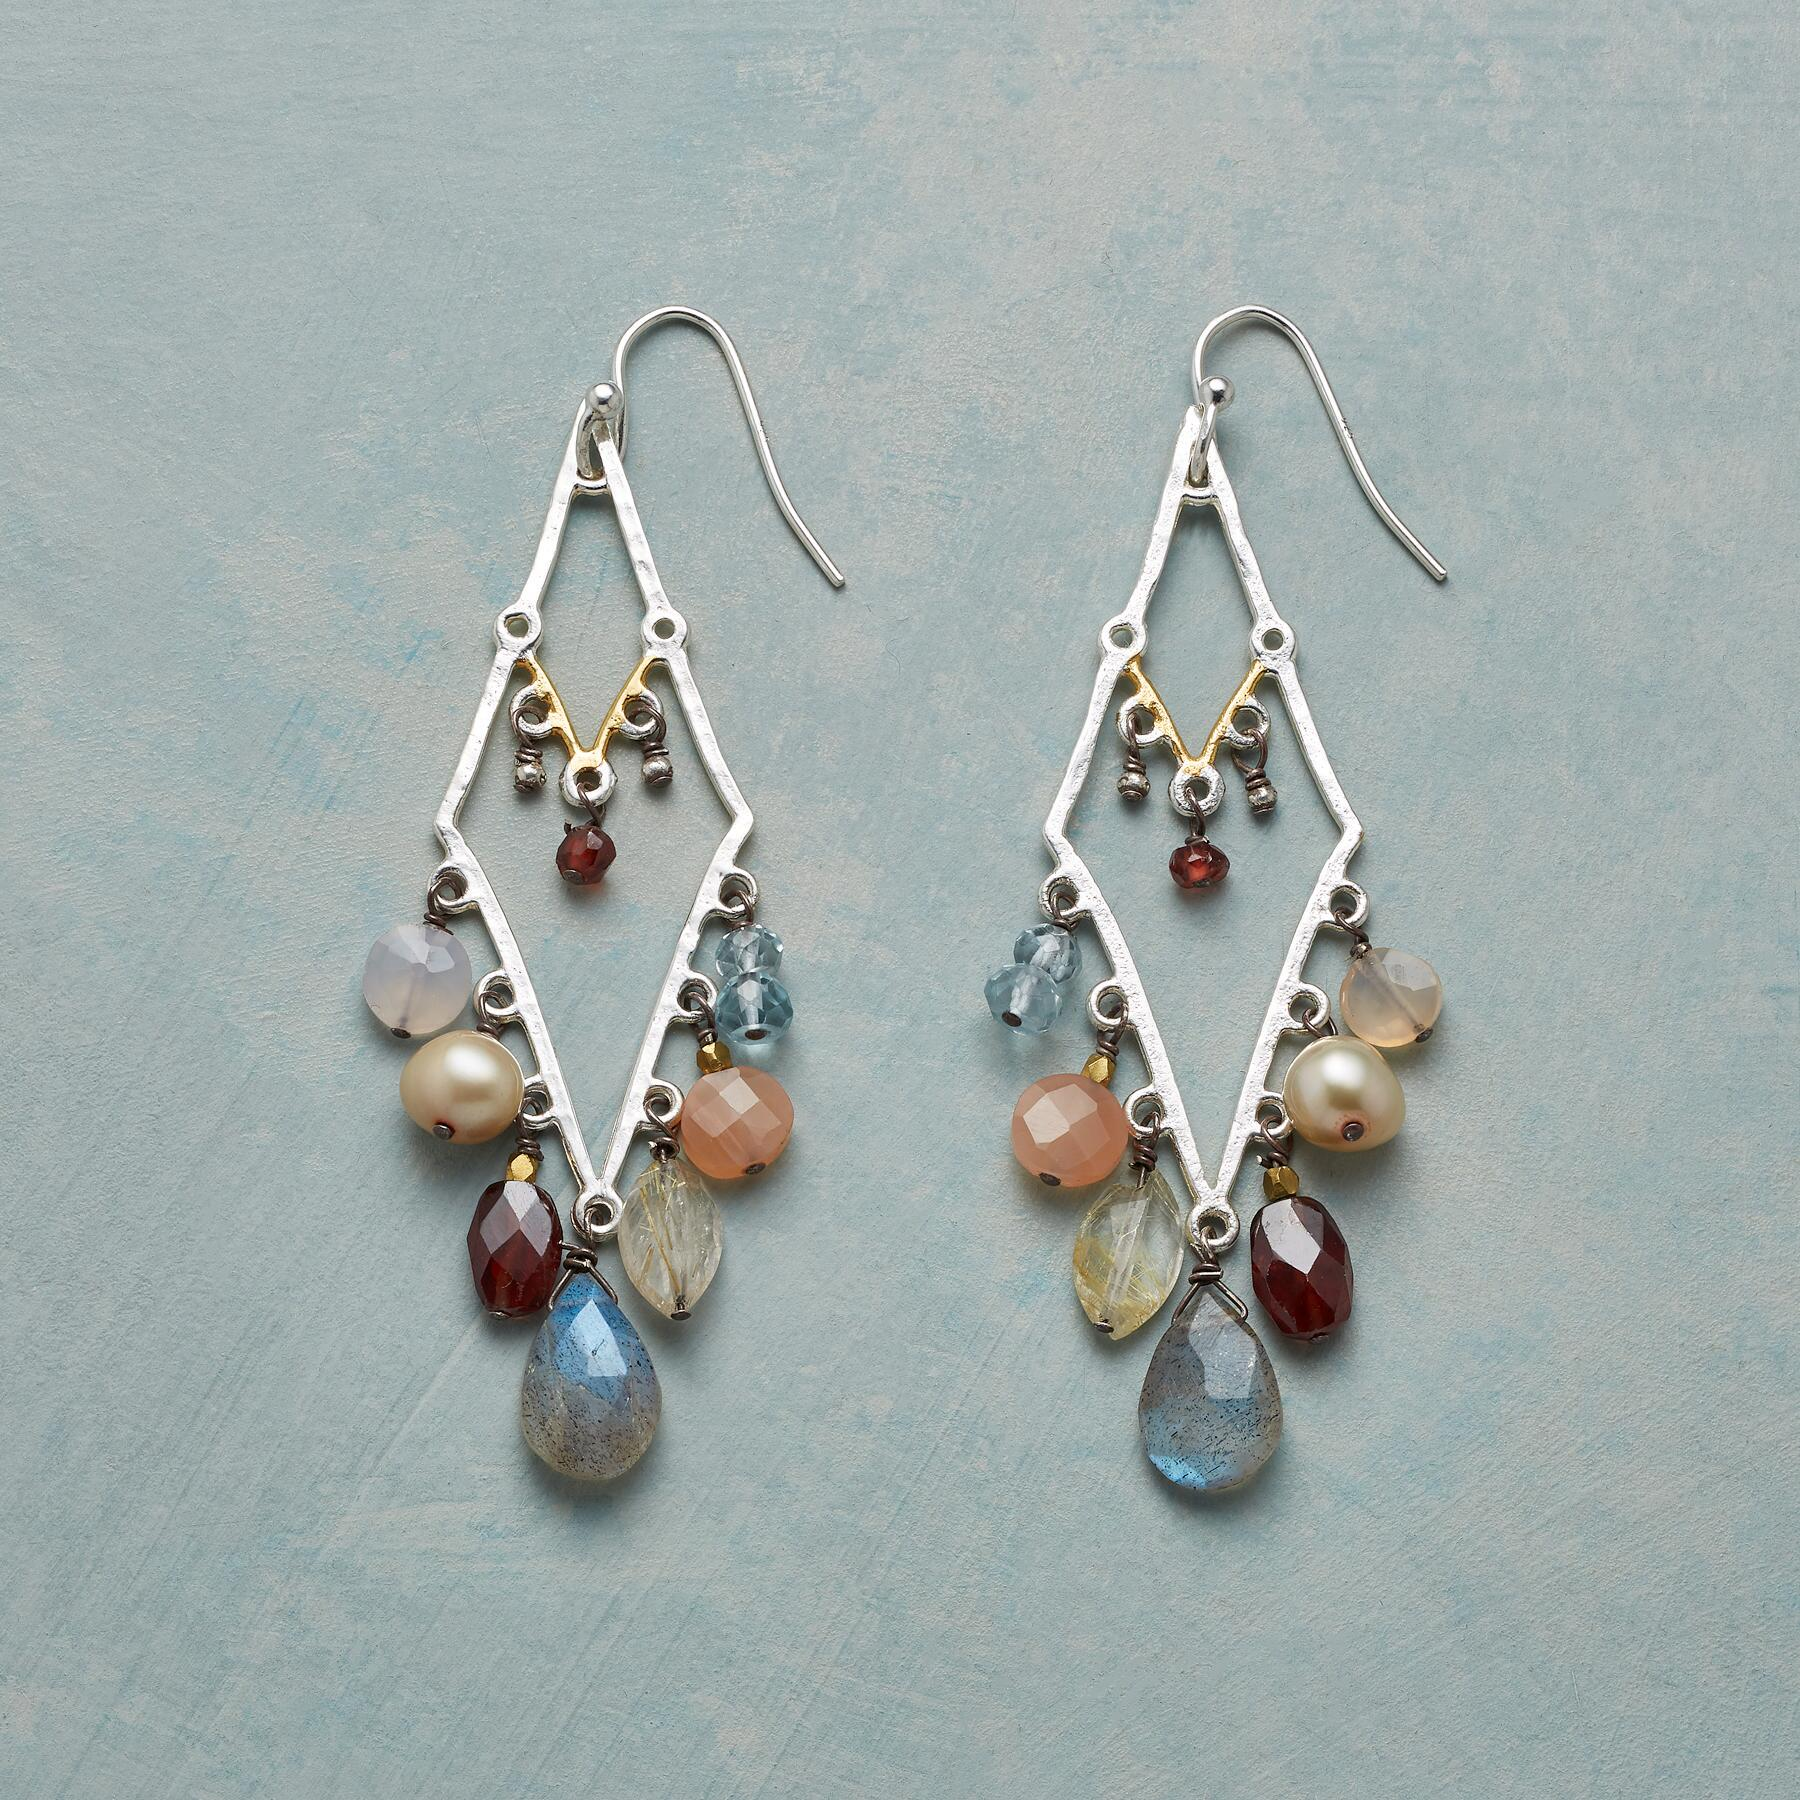 VARIETAL EARRINGS: View 1